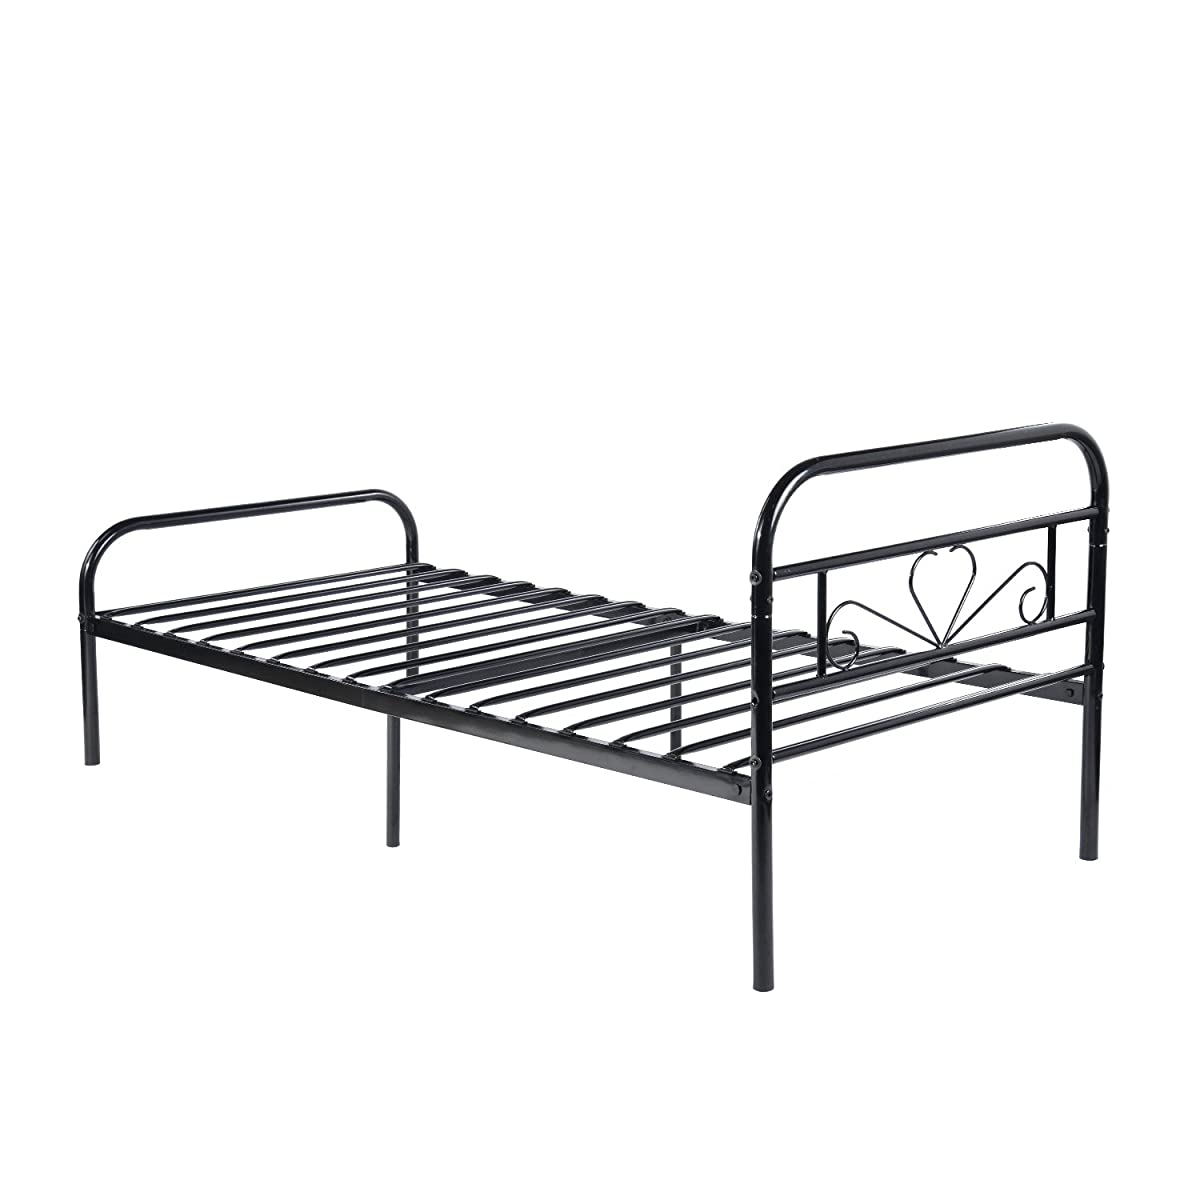 Green Forest Twin Bed Frame Metal Platform Mattress Base Black Bed with Vintage Headboard Box Spring Replacement, Twin